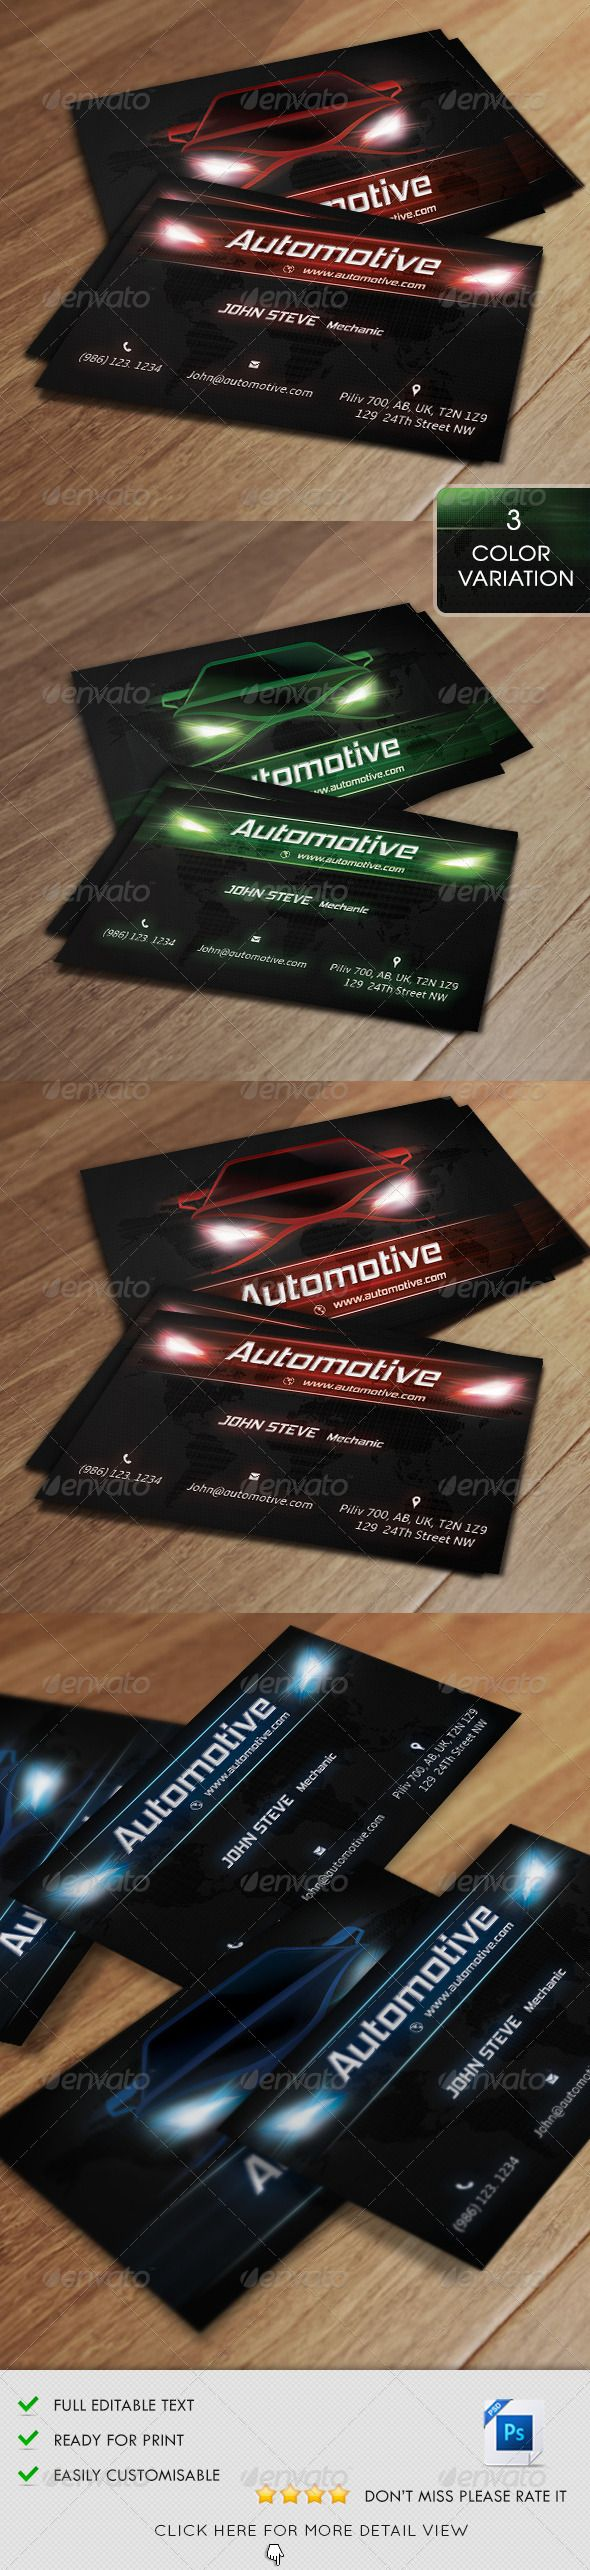 Automotive Business Card v2 | Business cards, Business and Font logo